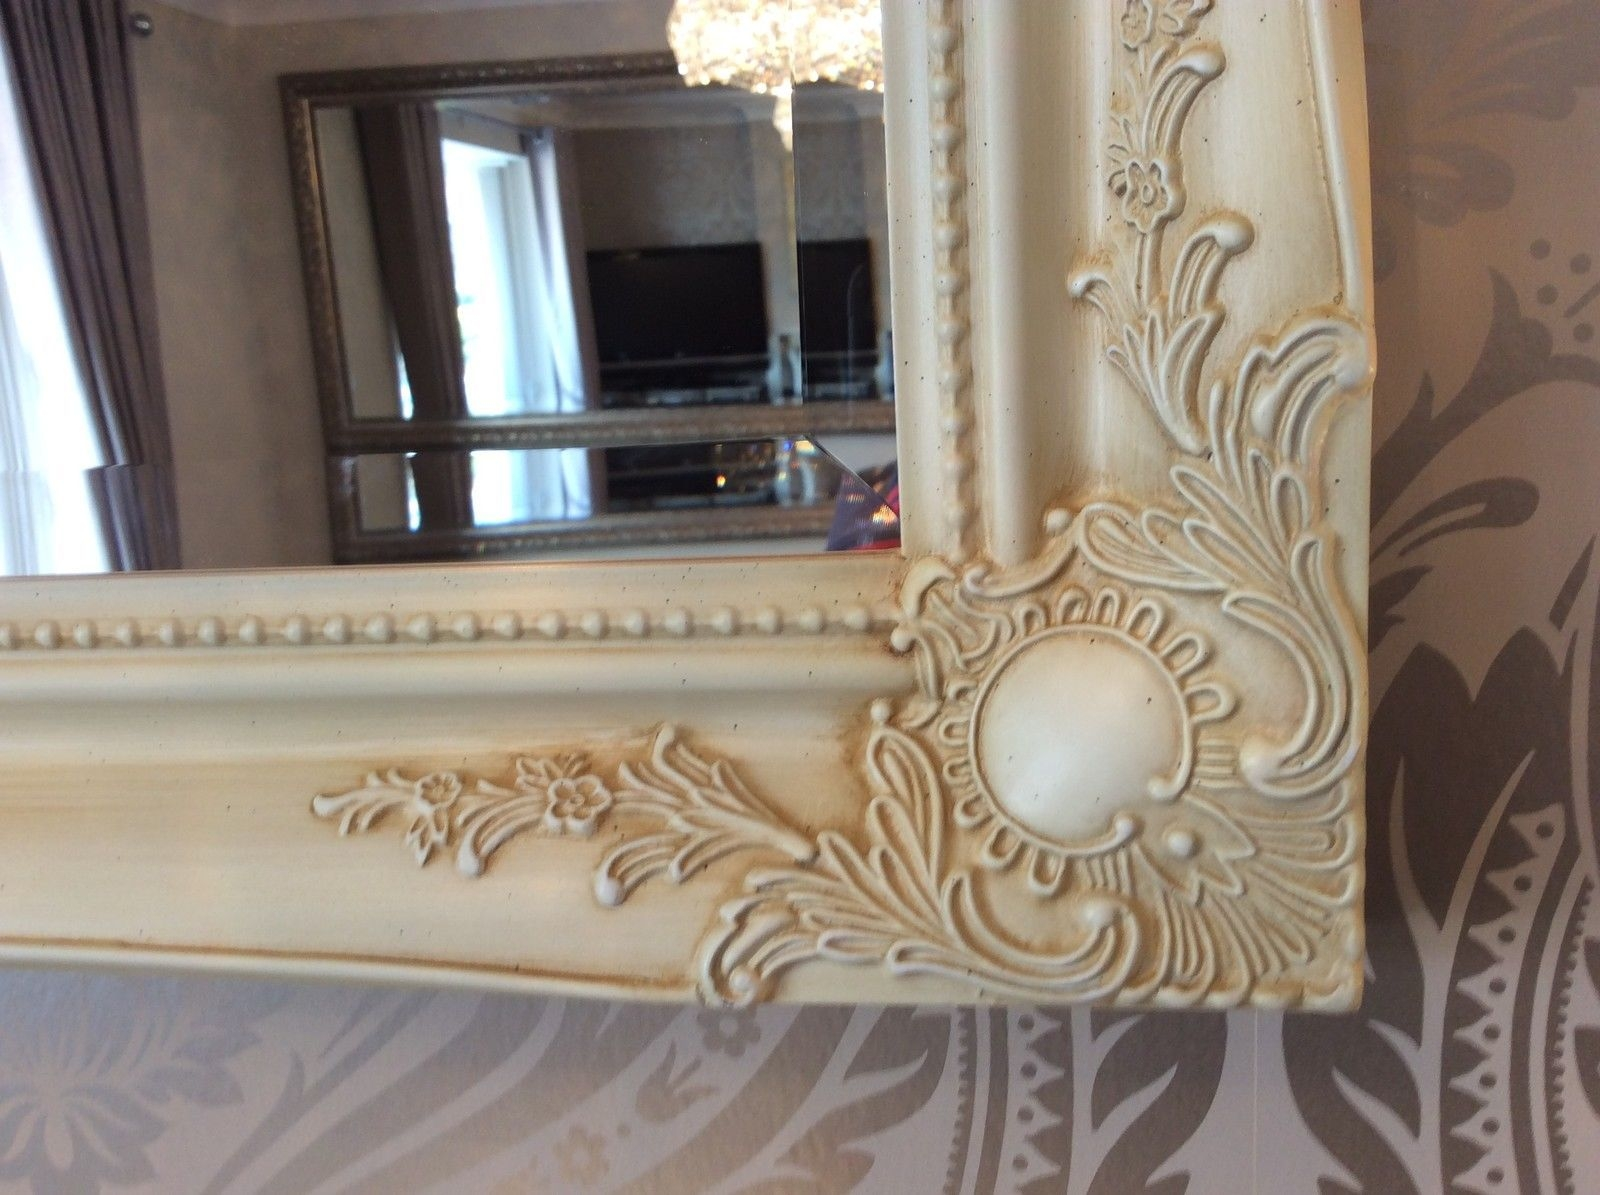 Ornate Cream Ivory Shab Chic French Inspired Mirror Bargain With Regard To French Inspired Mirrors (Image 13 of 15)